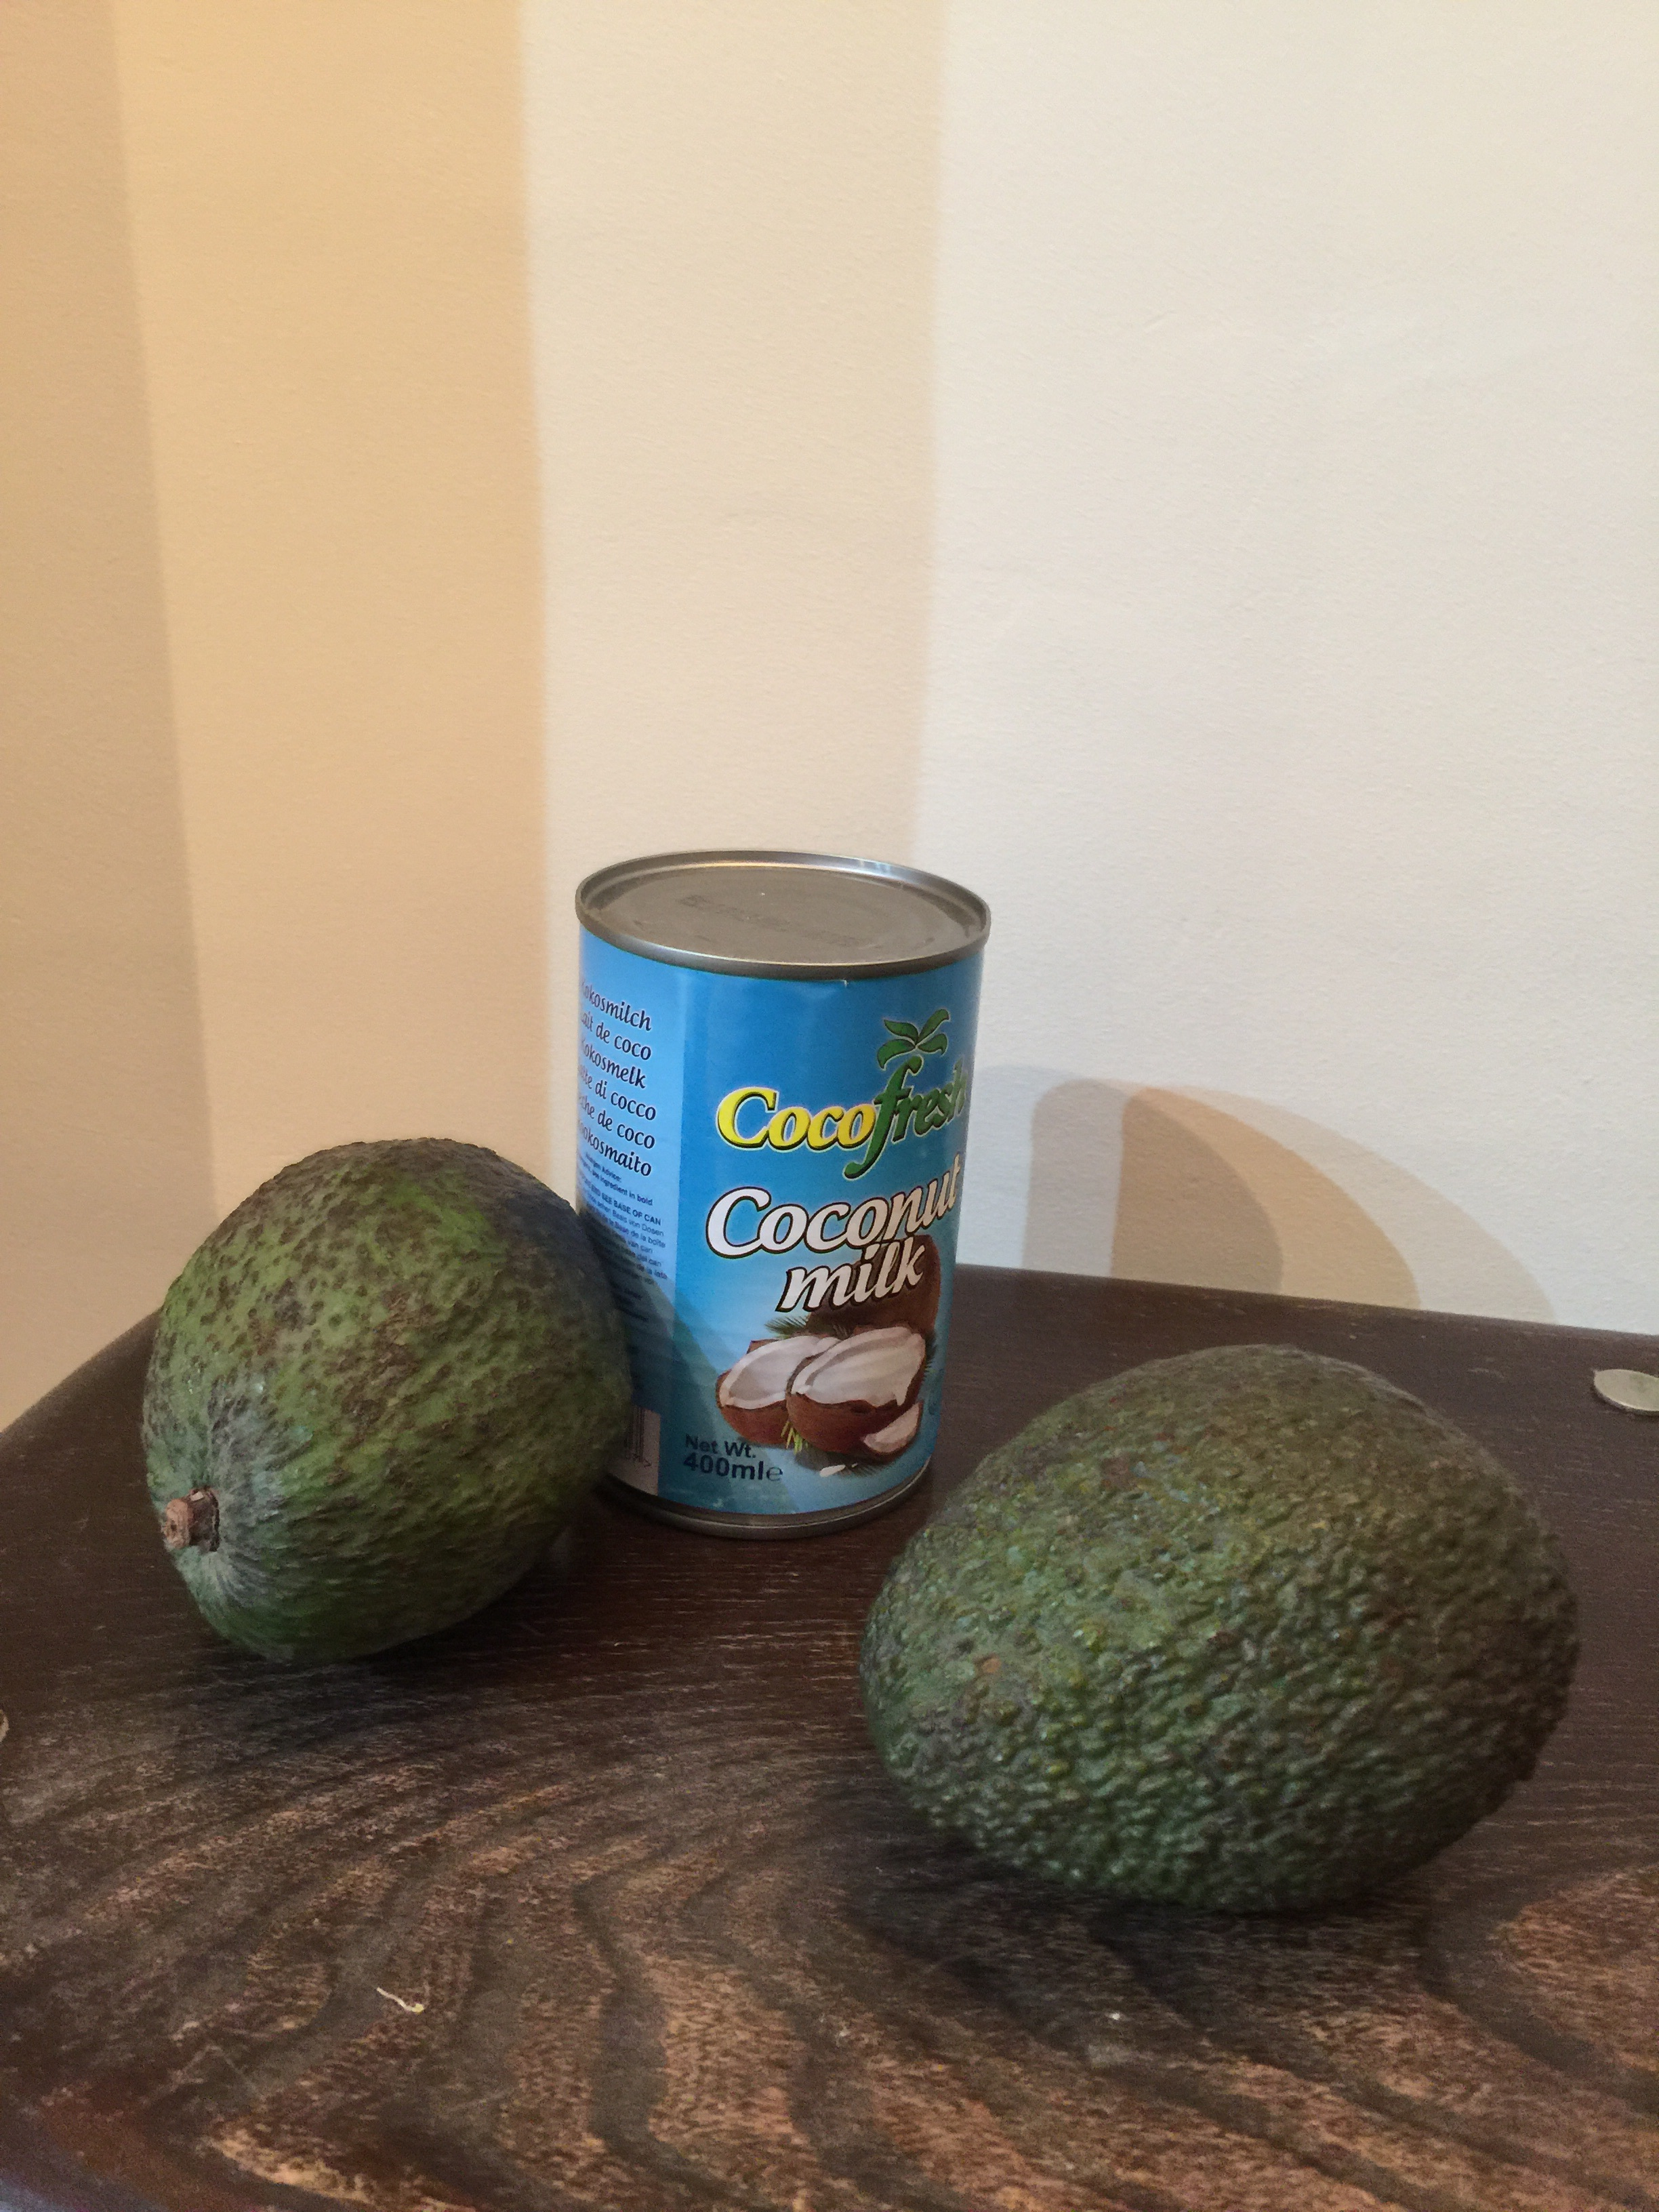 2 ripe avocados and a tin of coconut milk